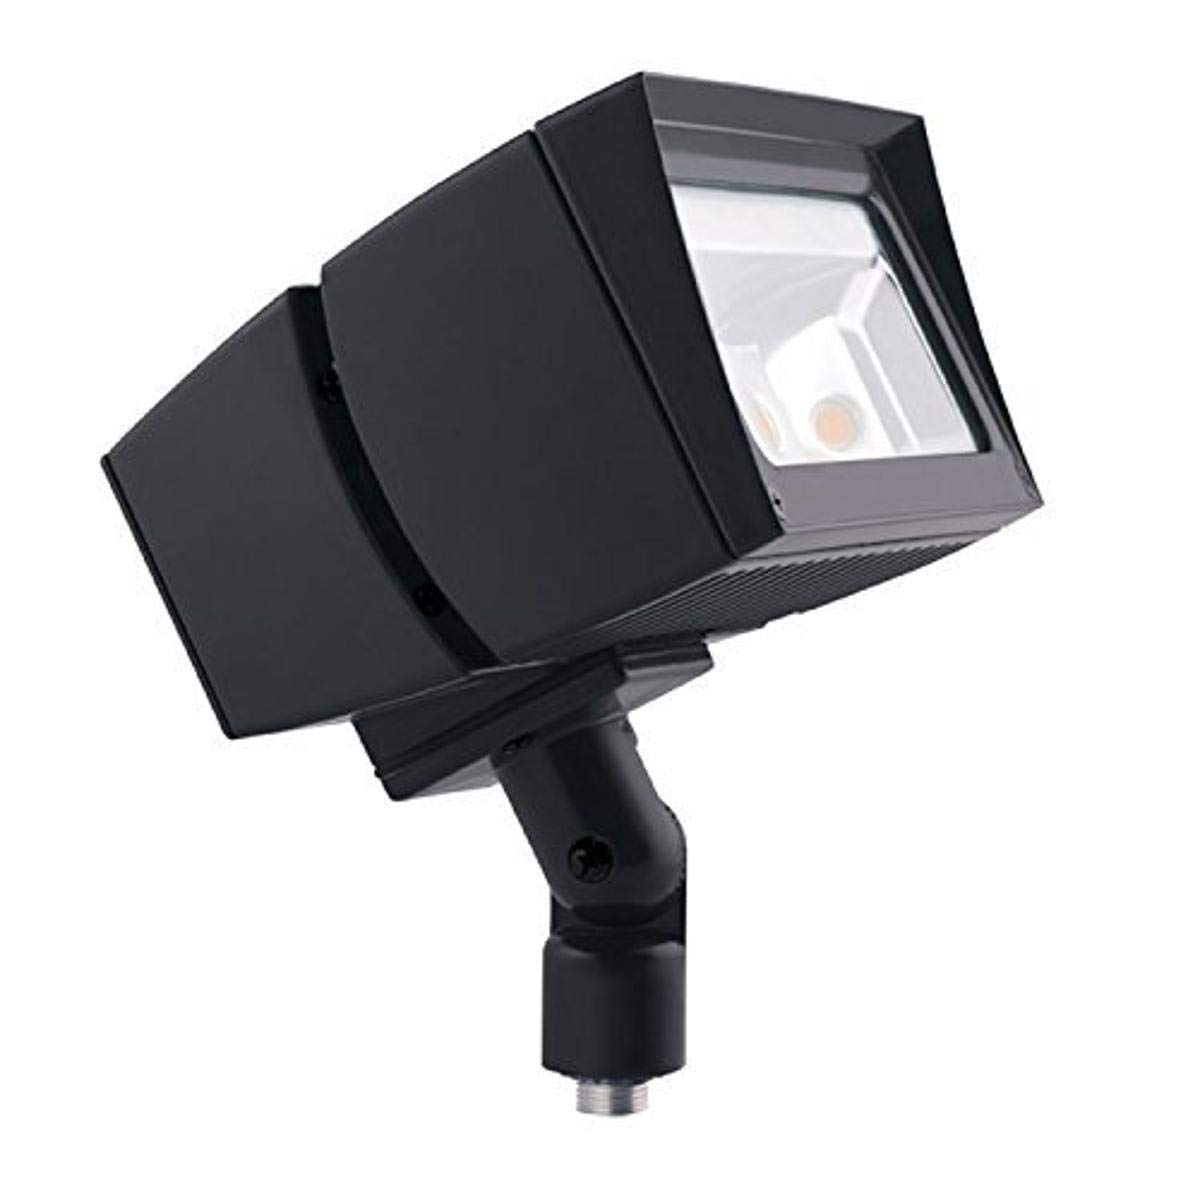 RAB Lighting FFLED52 FFLED 52W LED Floodlight, 5000 K Cool Color Temp, Arm Mounted, Standard Type, Bronze Finish